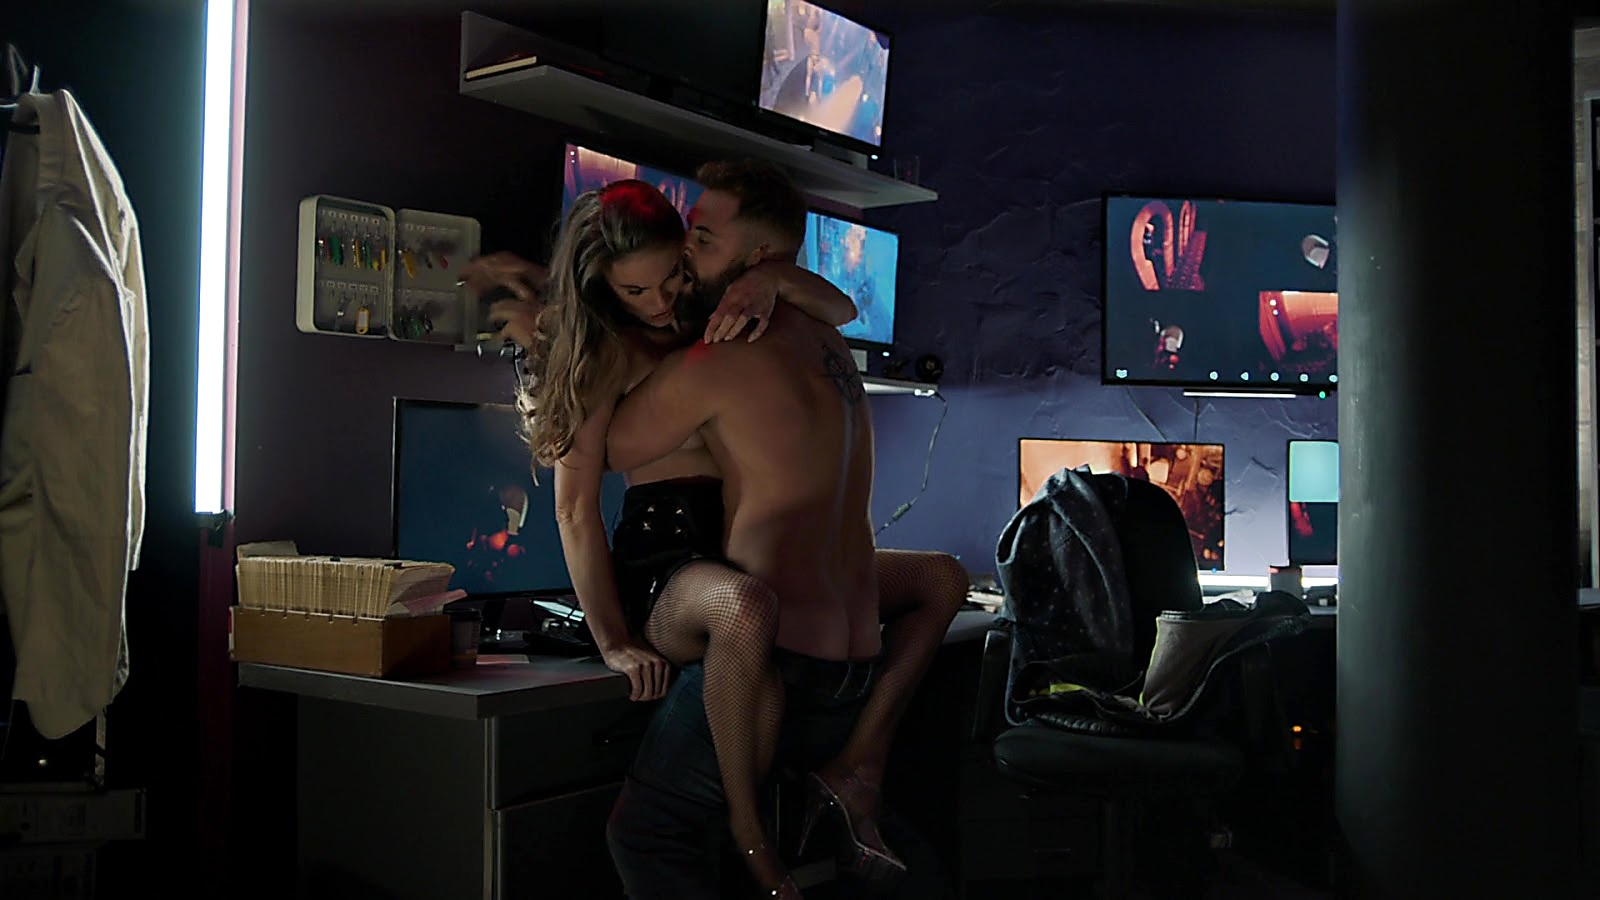 Daniel Macpherson sexy shirtless scene February 22, 2020, 6am